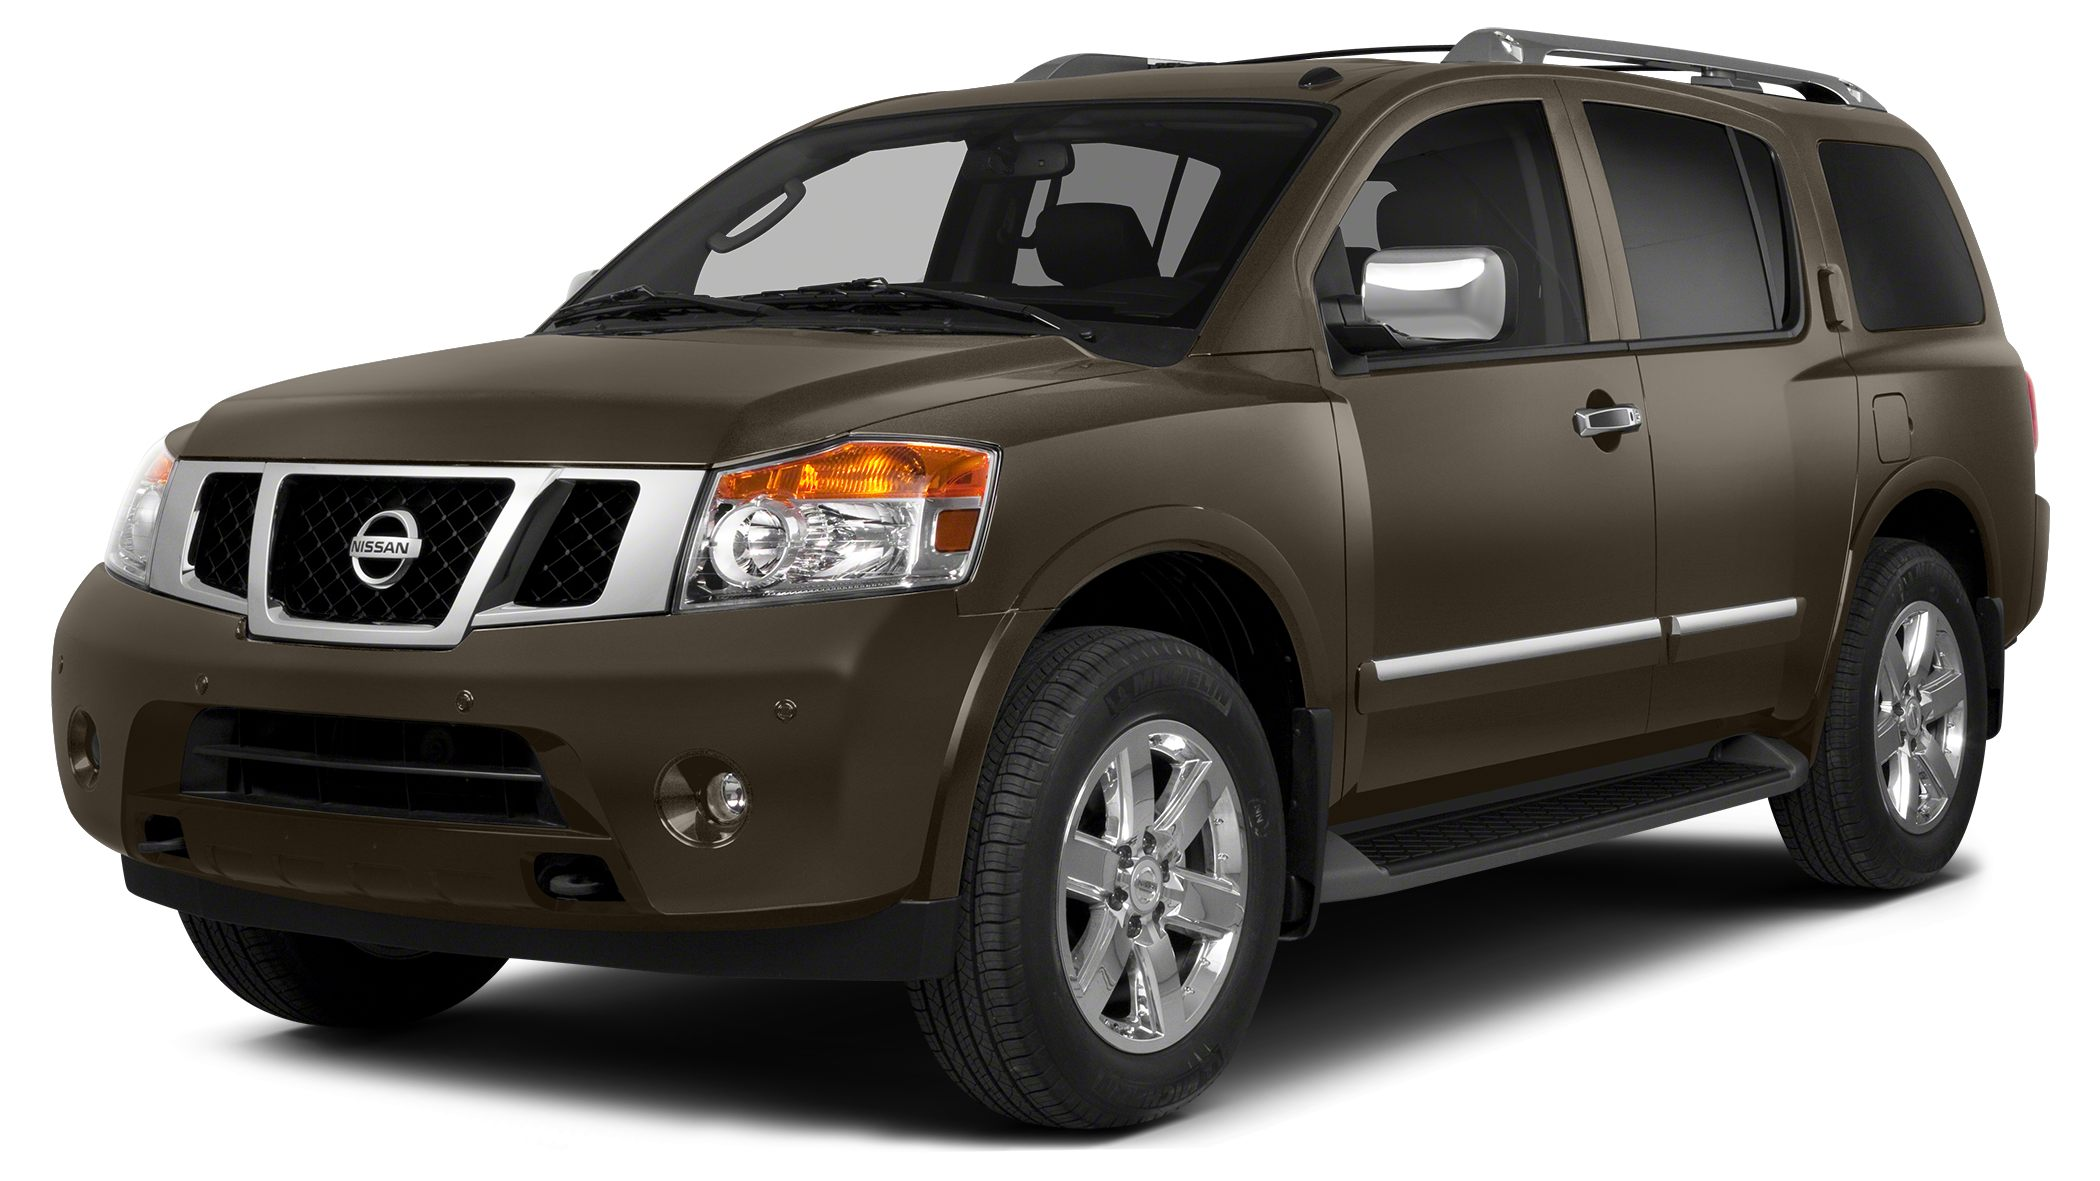 2015 Nissan Armada Platinum This Bronze 2015 Nissan Armada Platinum might be just the SUV for you